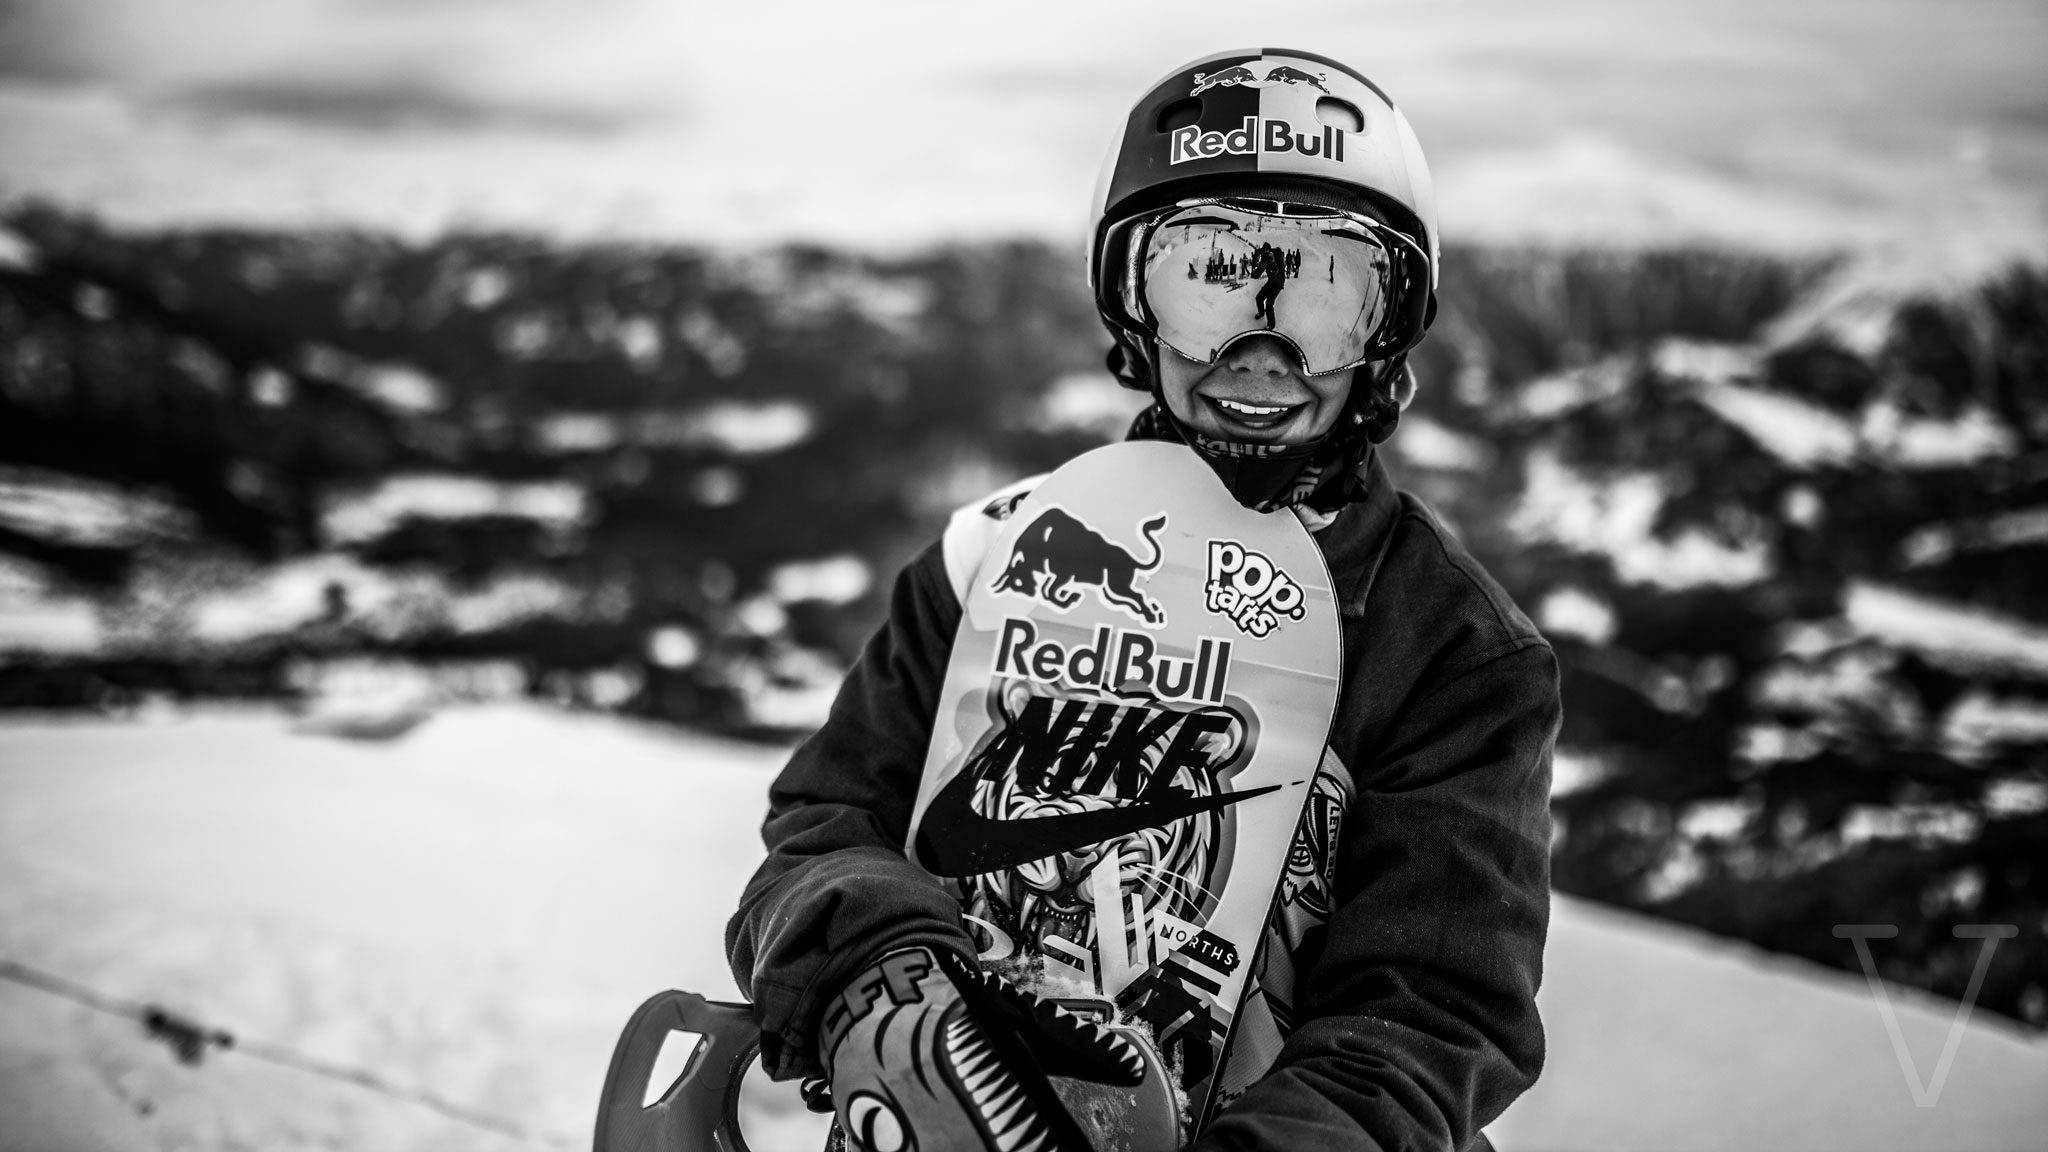 Toby Miller is just 14, but he's already being called the next Shaun White.